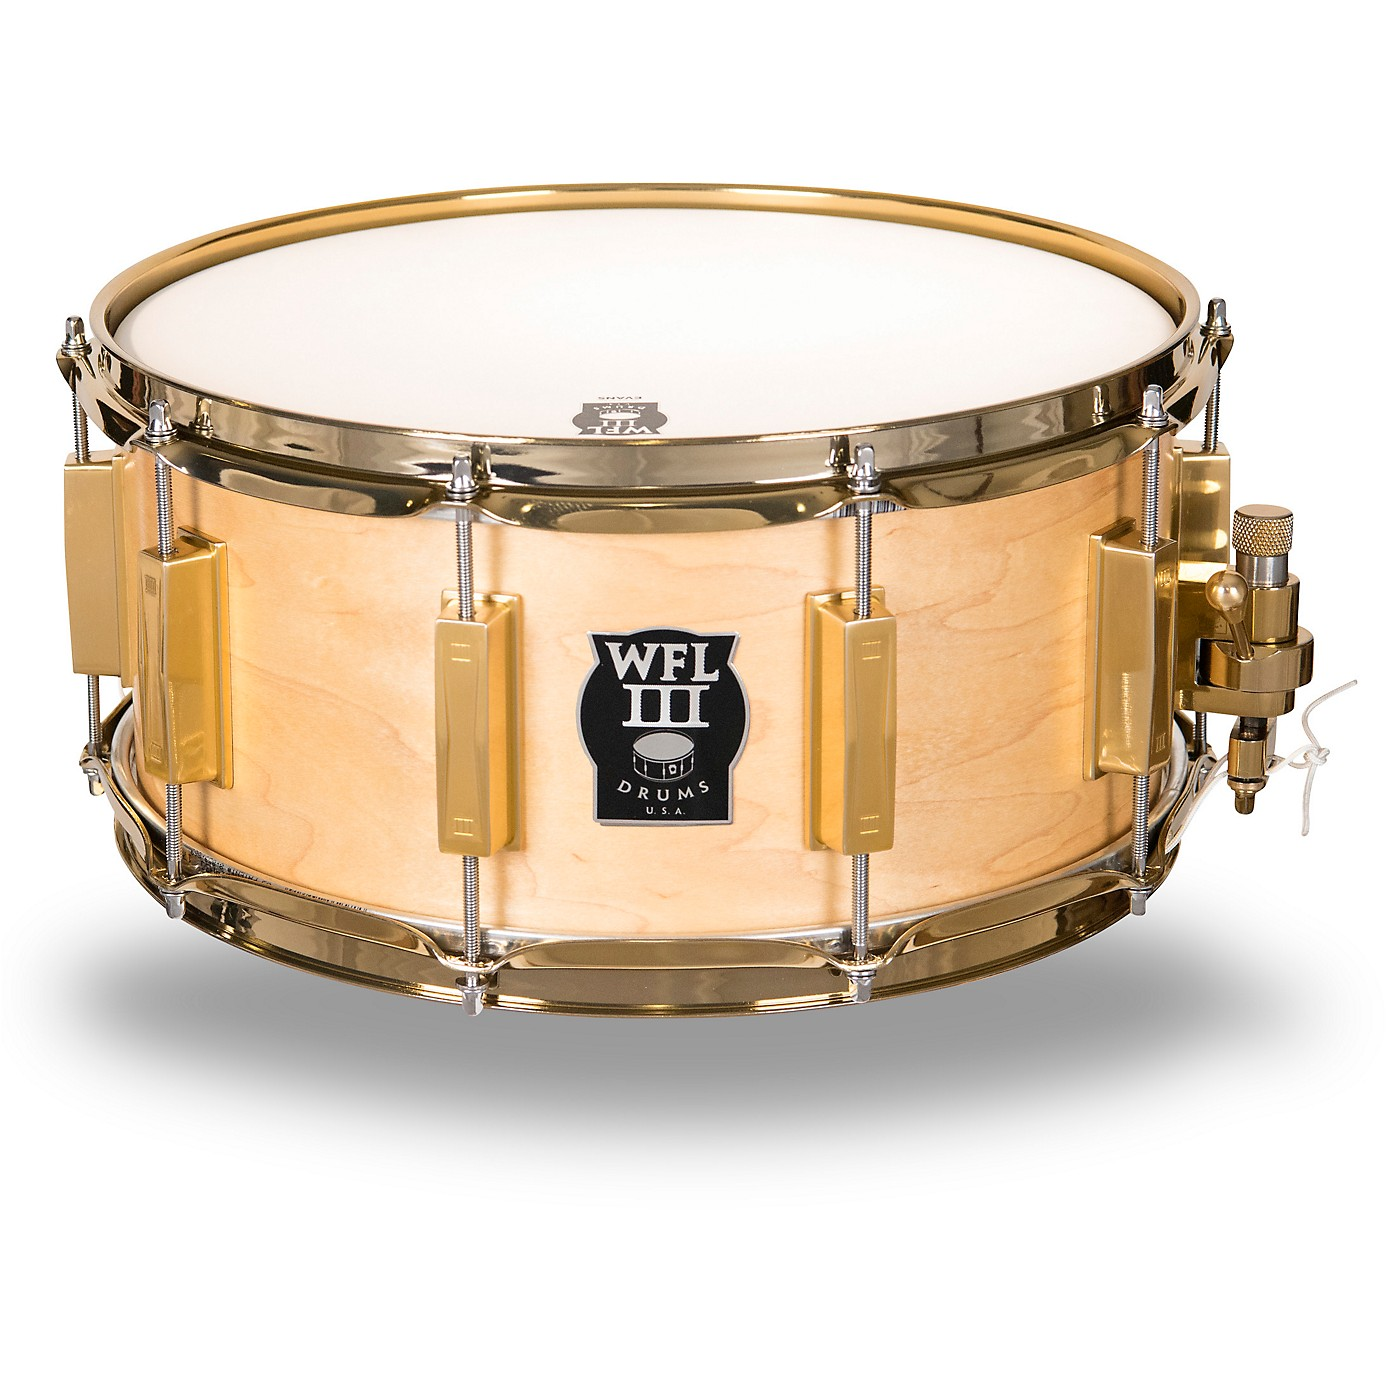 WFLIII Drums Classic Wood Maple Snare Drum with Gold Hardware thumbnail